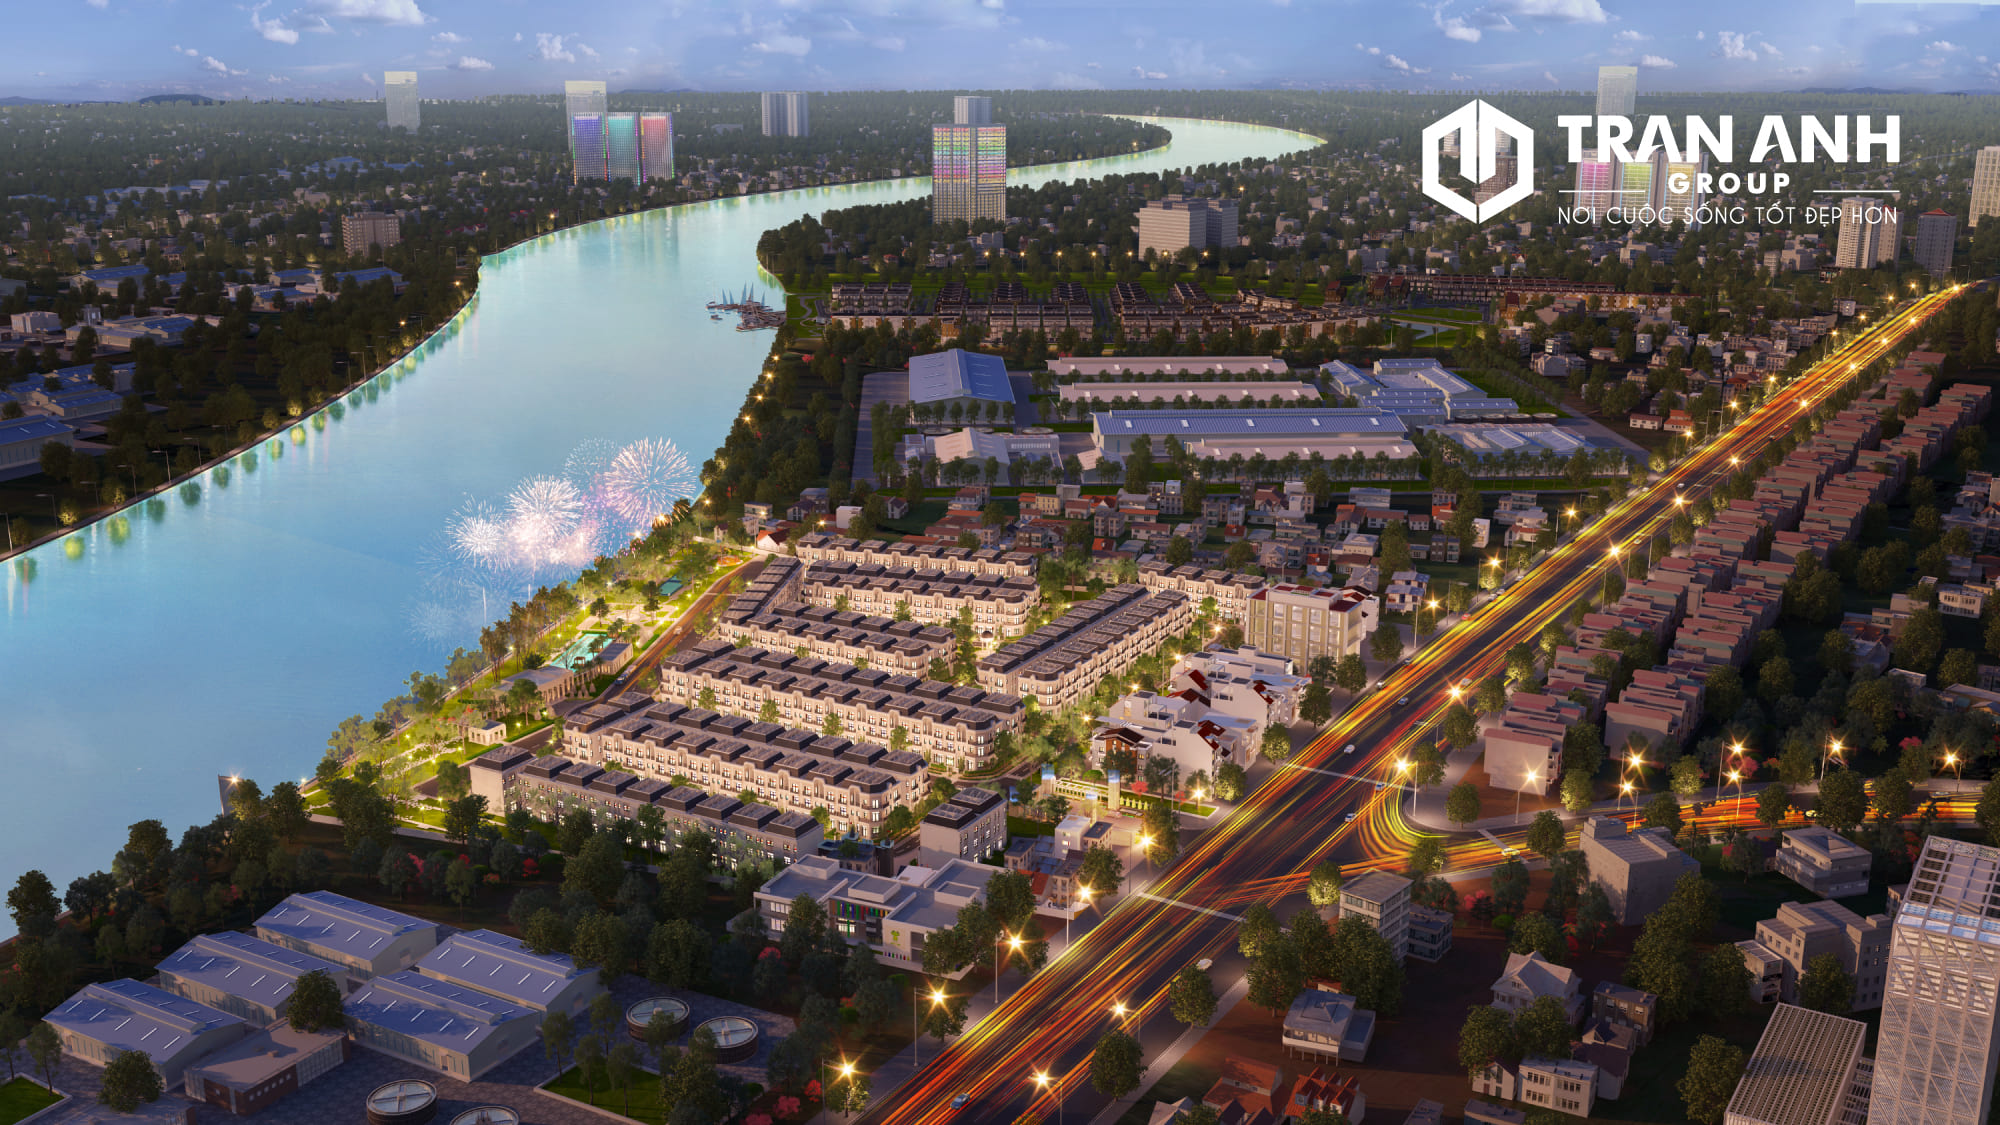 tong-the-solar-city-18-05-2019-19-12-52.jpg